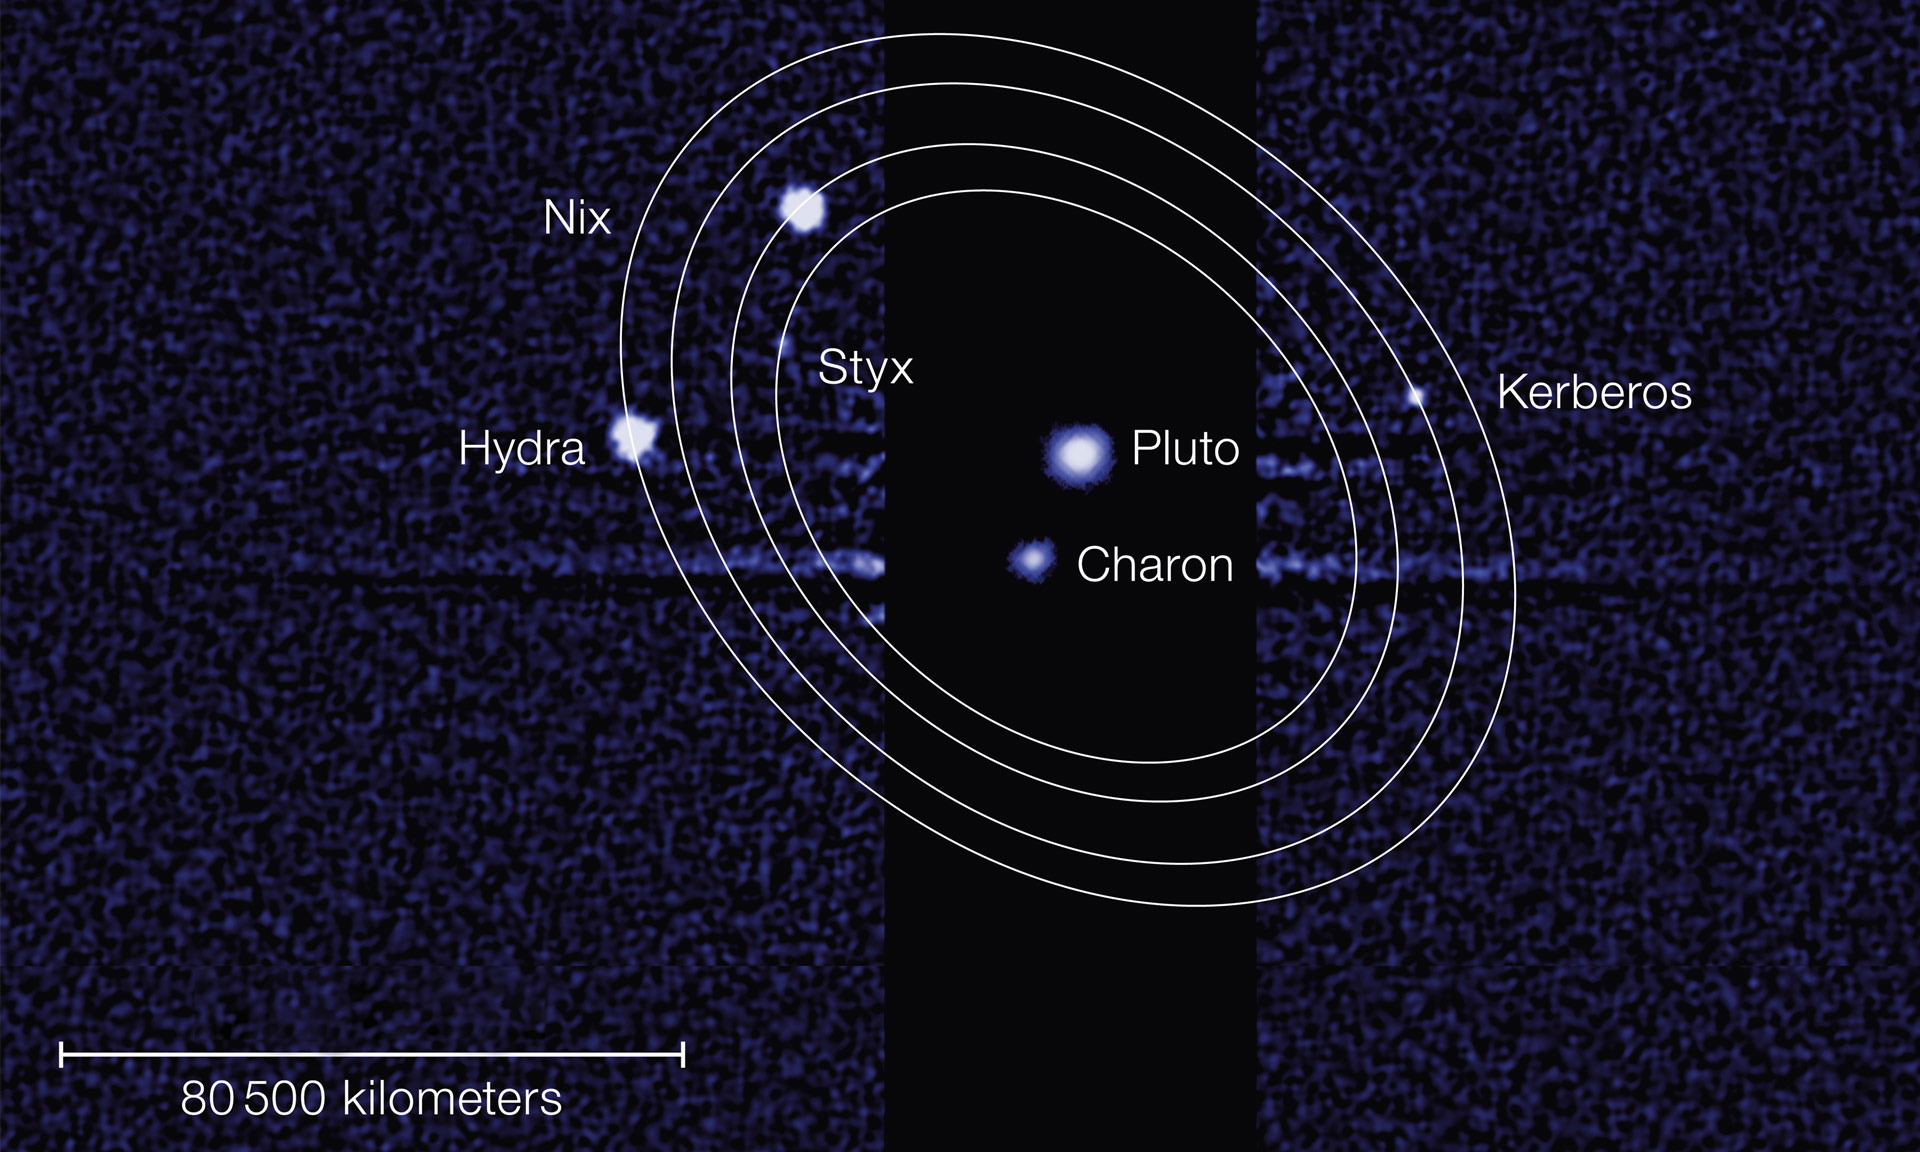 Styx Pluto S Moon: Kerberos And Styx Accepted By IAU As Names For Pluto's